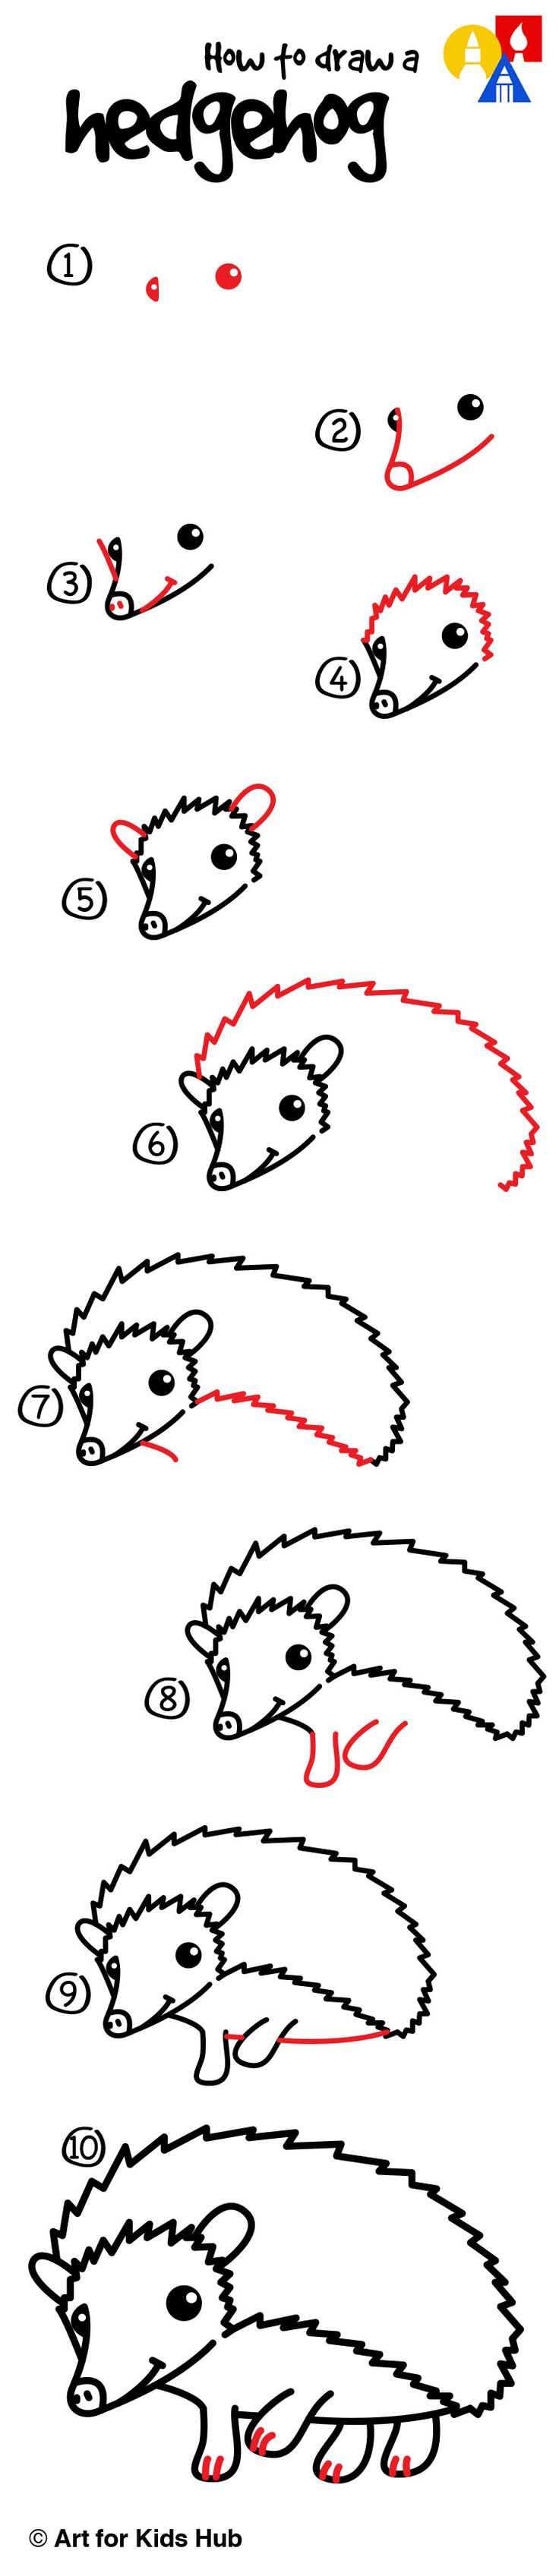 How to draw a hedgehog!